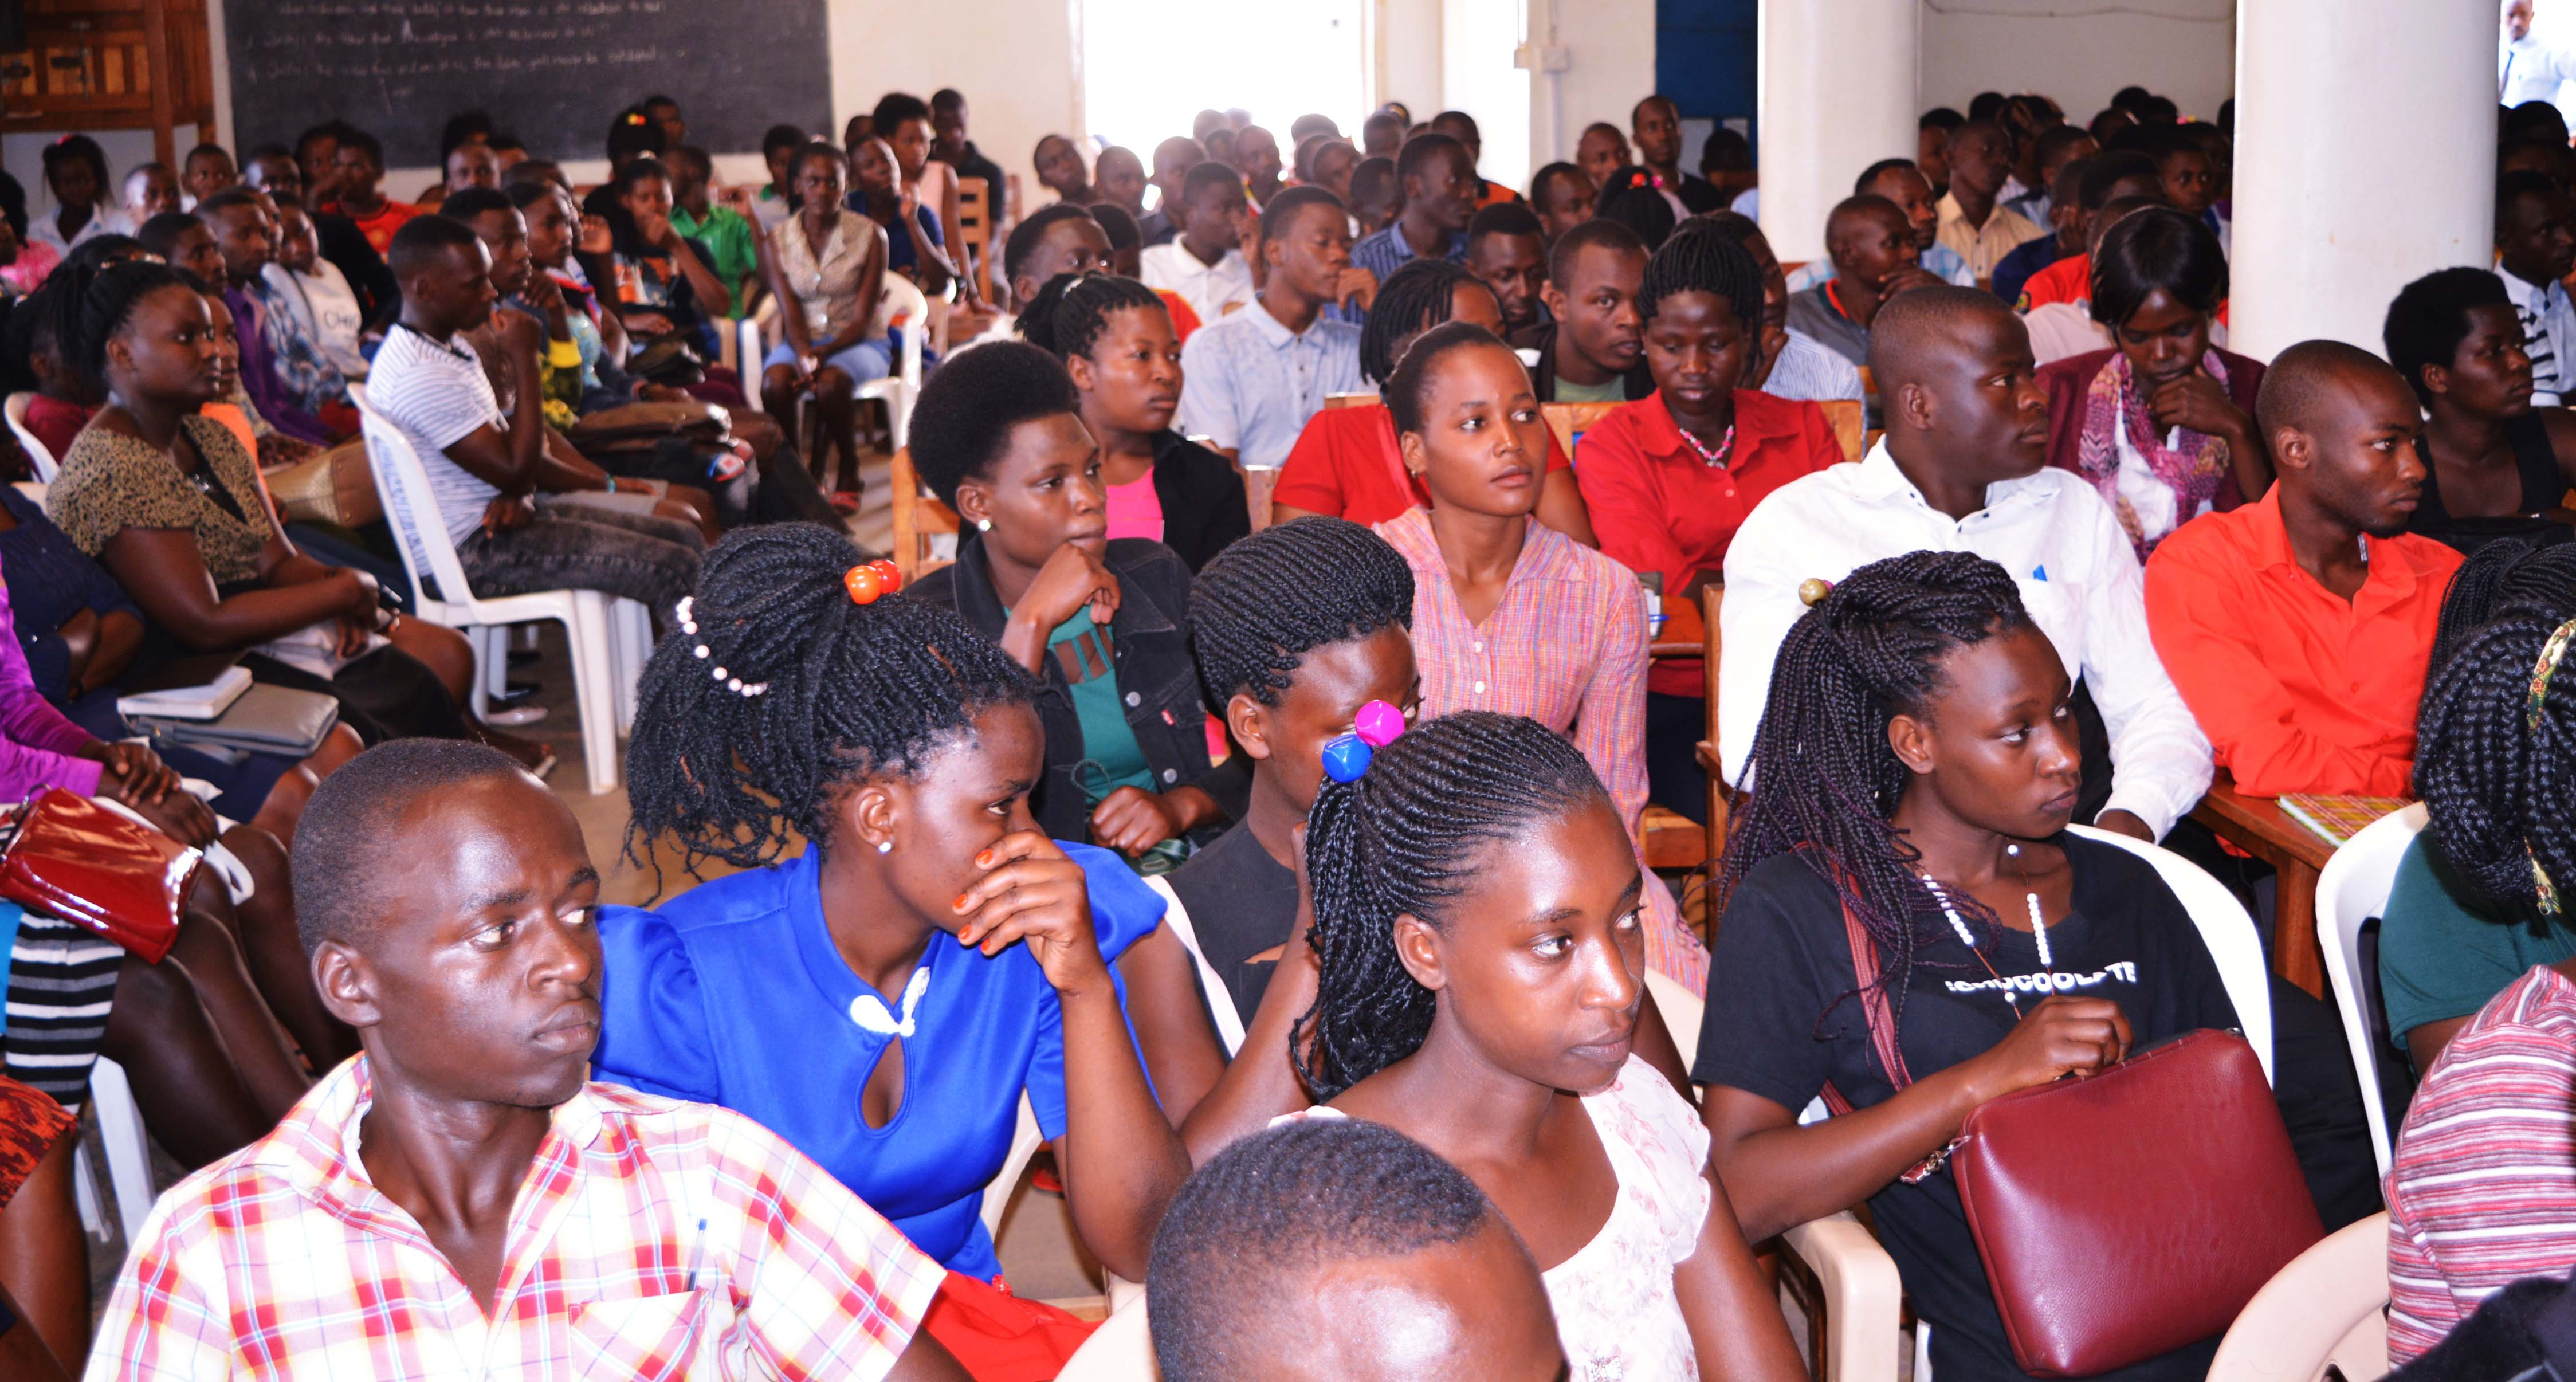 Freshers attending their first community hour fellowship in the University main hall